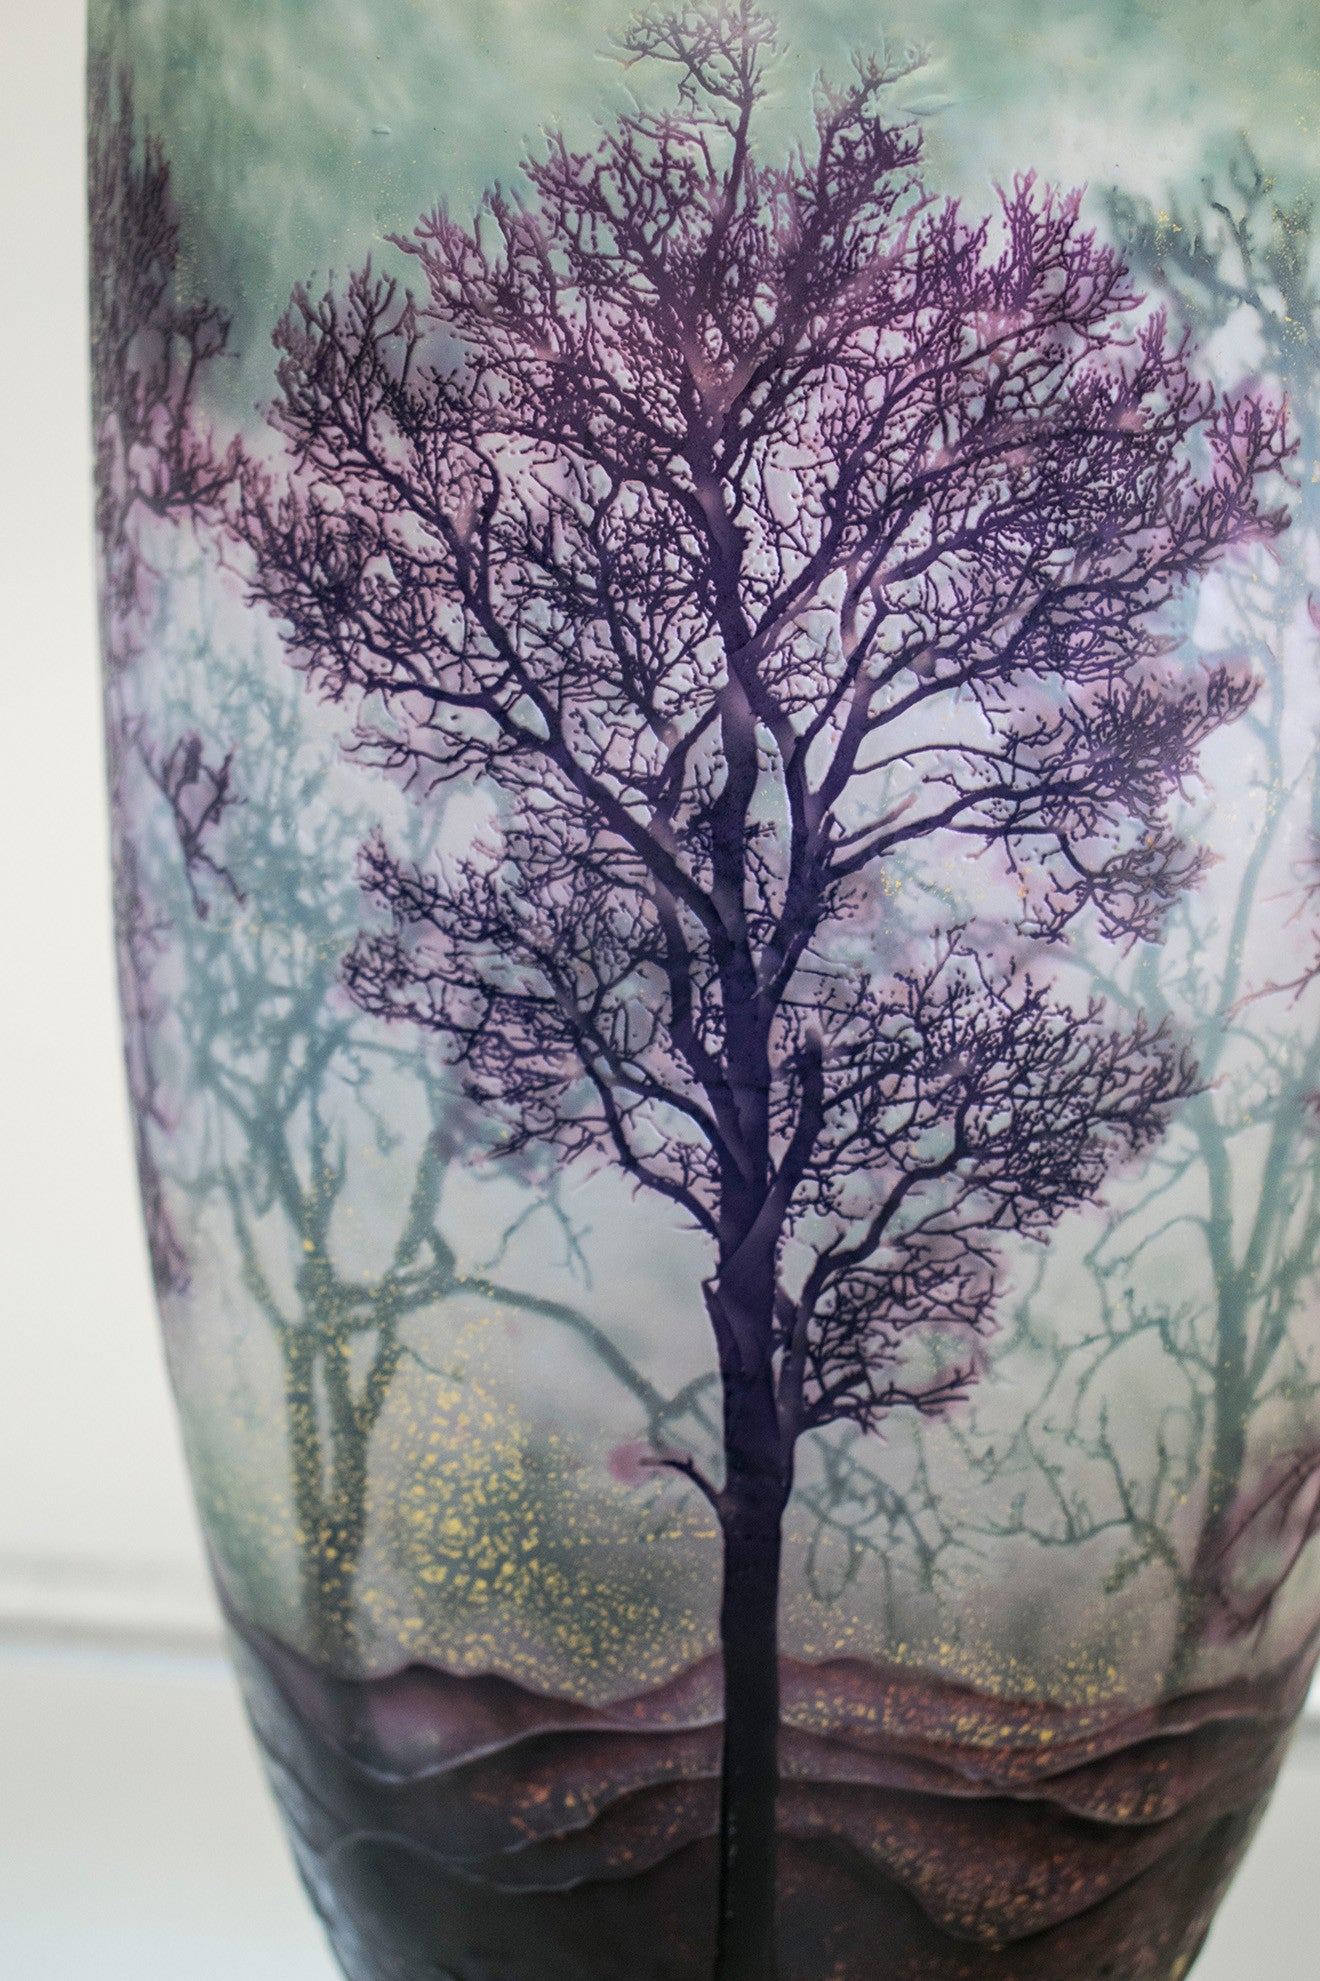 Decorative vase with purple trees and green glass Collect 2017